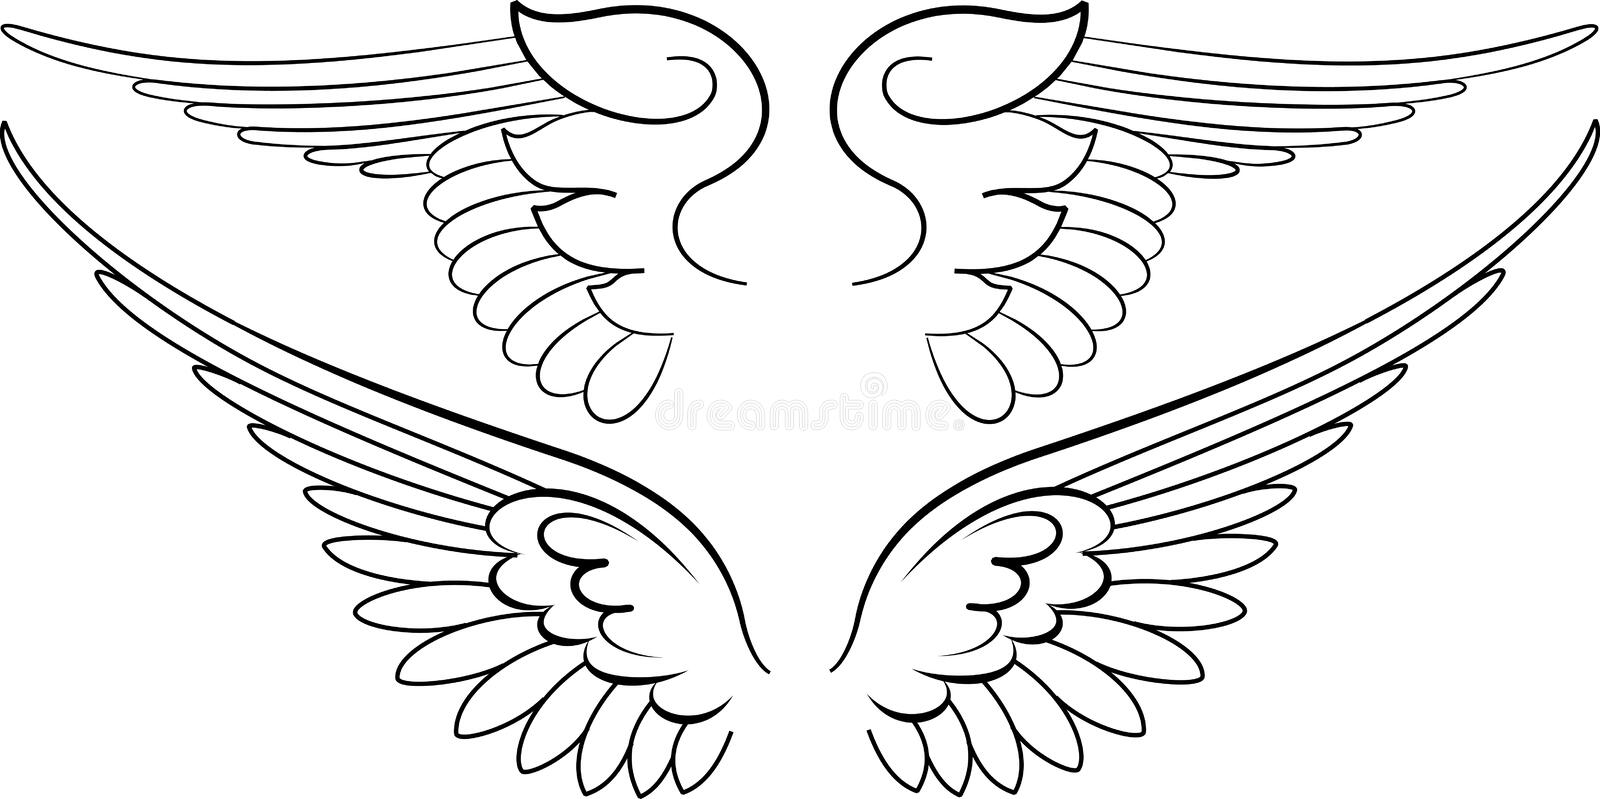 Baroque Wings in Calligraphy royalty free illustration